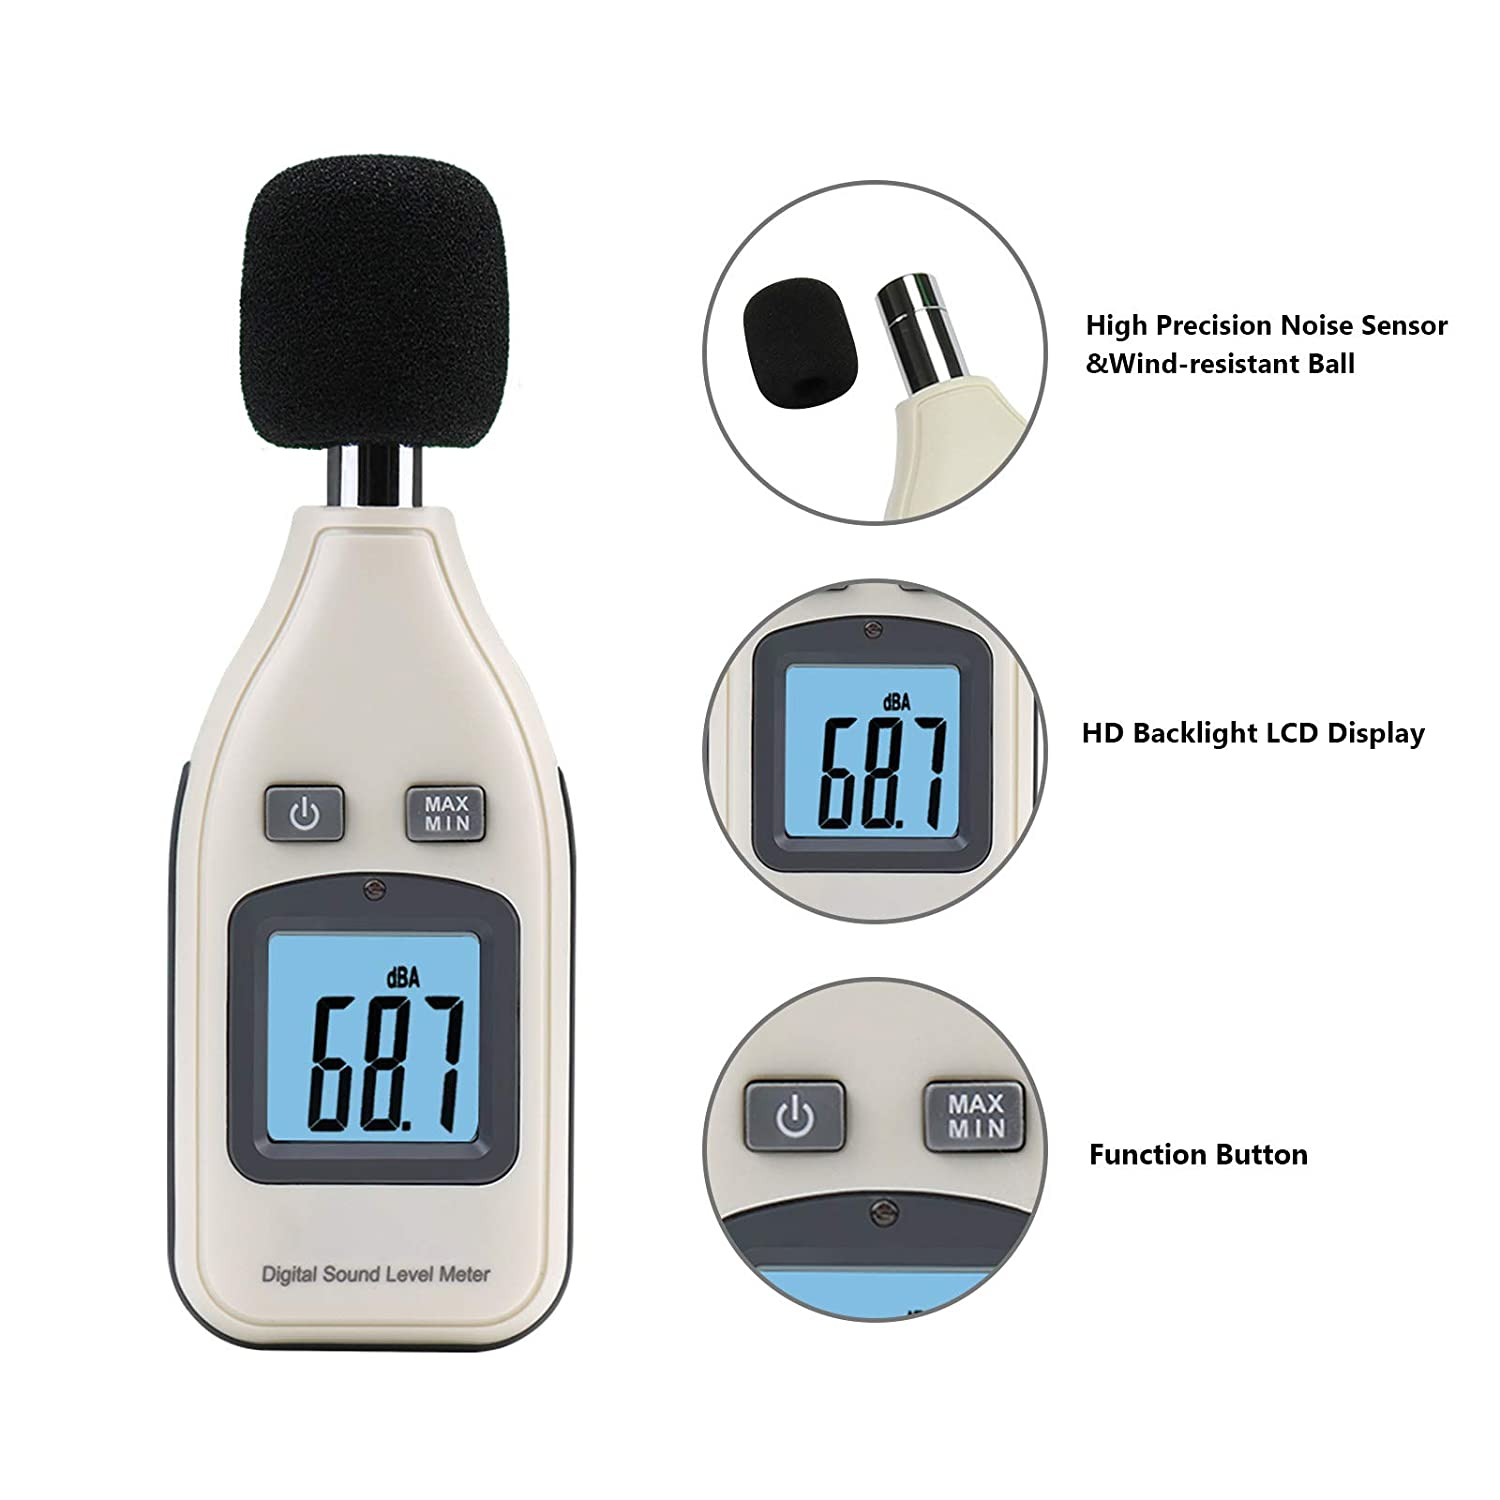 Decibel Meter Digital Sound Level Meter 30-130dB Range,Max//Min//Data Hold,Self-Calibration Noise Meter,Noise Volume Measuring Instrument with Auto Backlight LCD Display Fourth Generation-A A